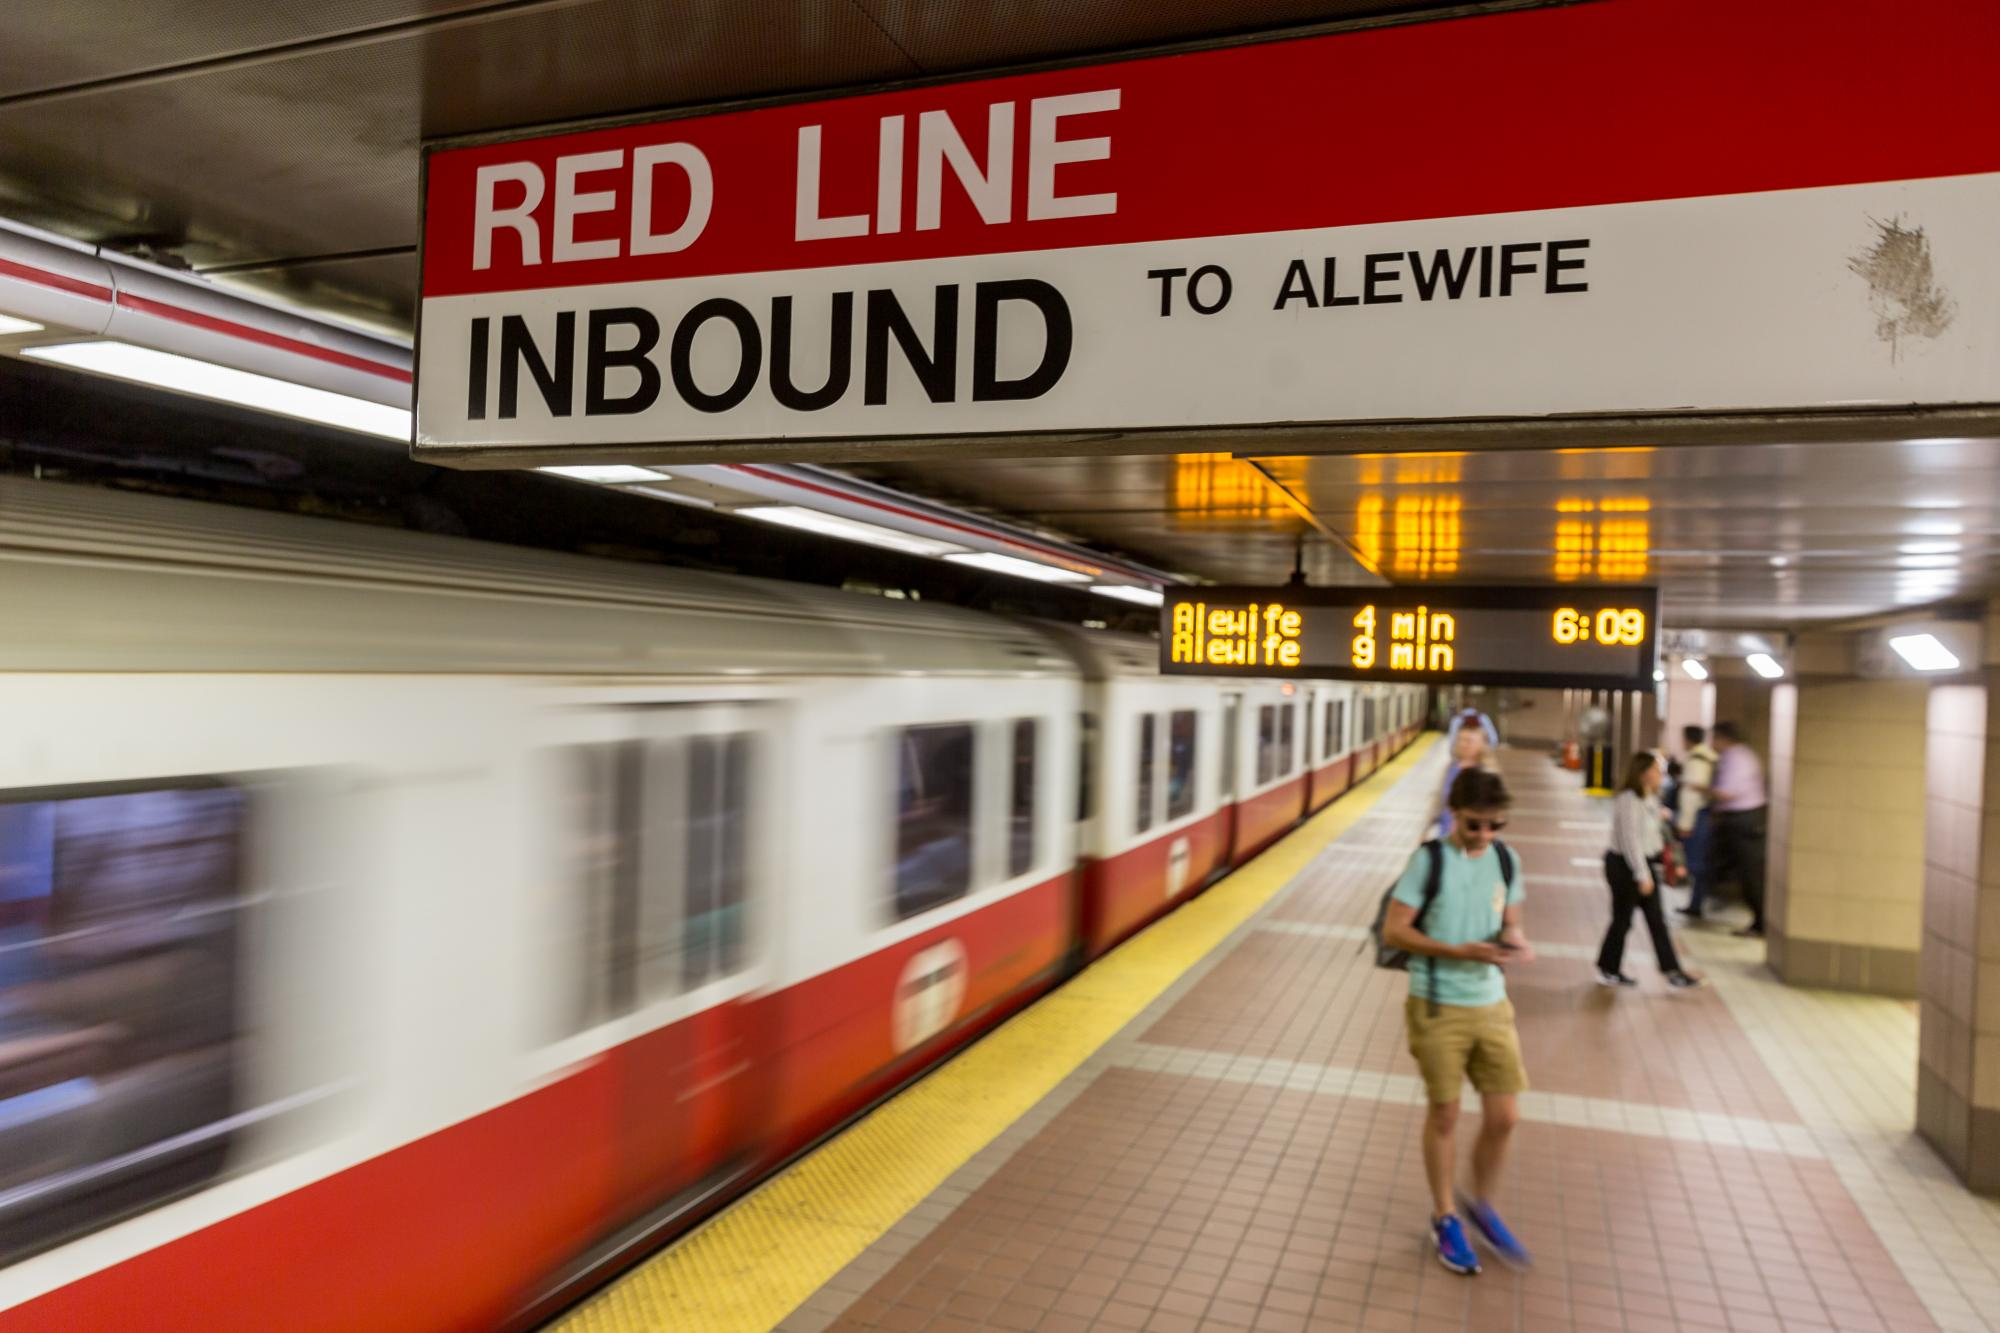 A Red Line train pulls out of the inbound platform at South Station, with passengers and a countdown clock in the background.